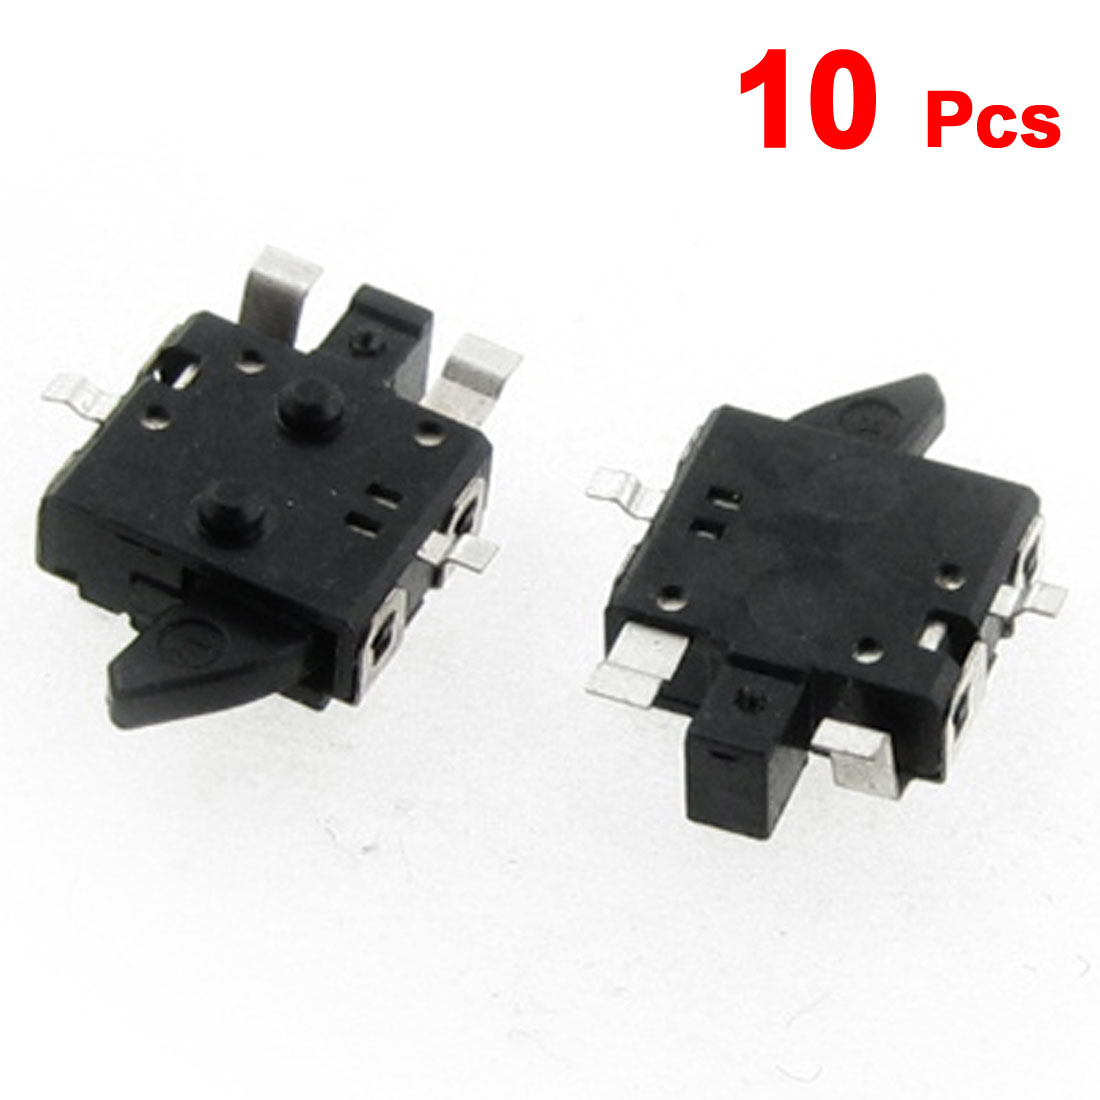 10 Pcs Two Way Operation SMD Momentary Detector Switch Black